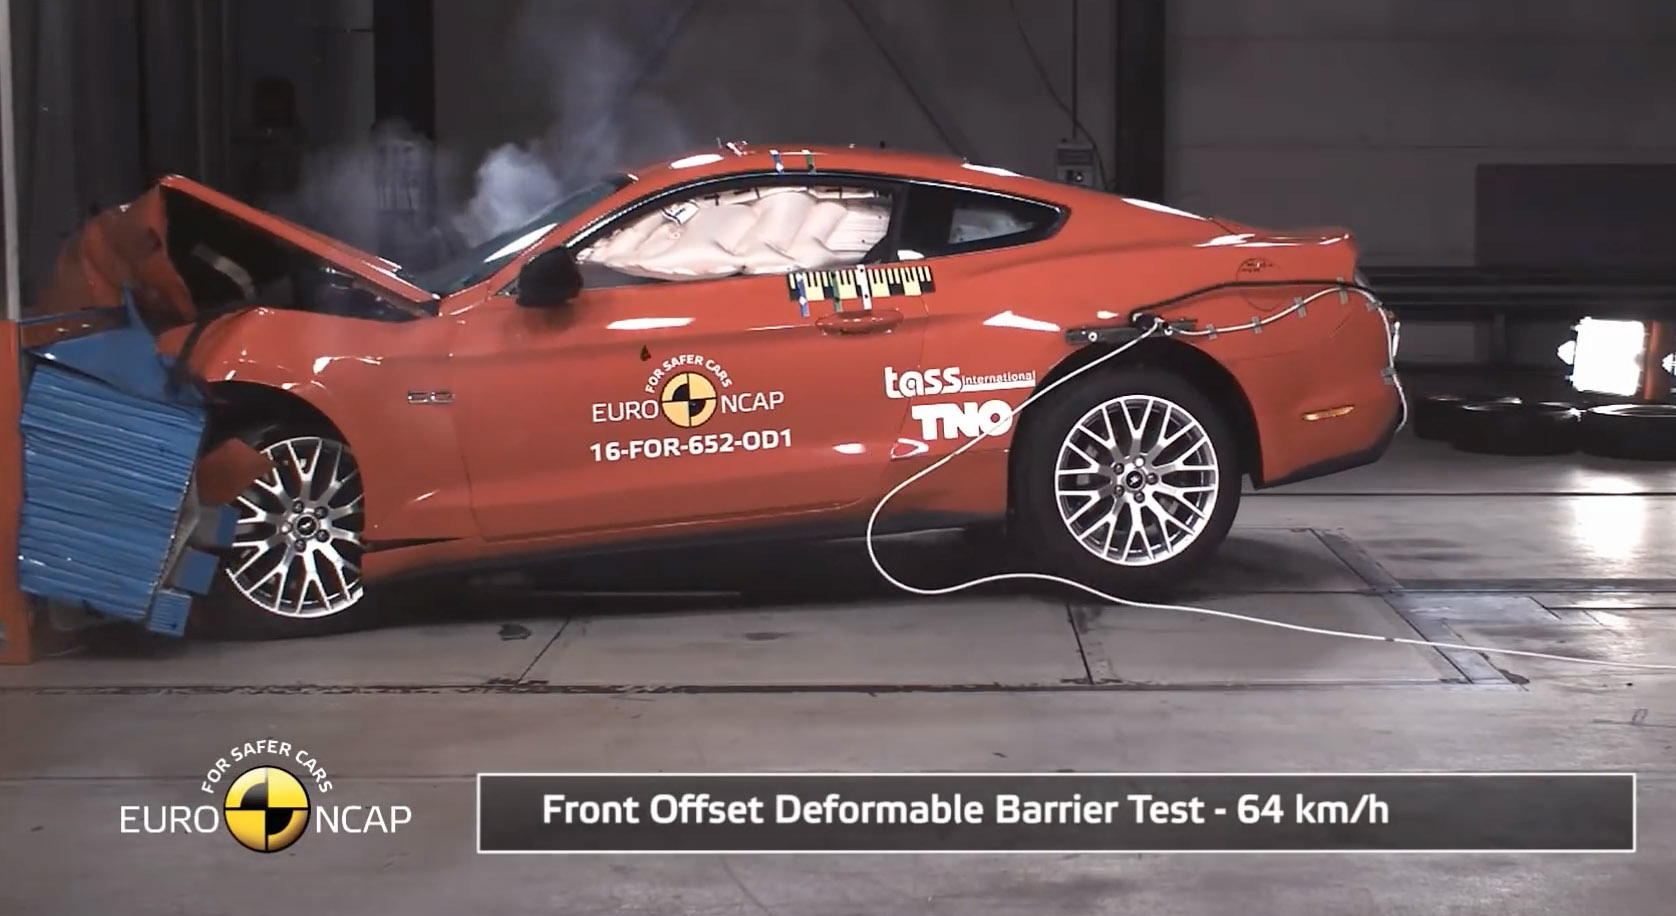 Euro NCAP says it's unlikely the Mustang can perform above three stars without major structural revision, which seems at odds with Mr Goodwin's claim about what differentiates safety performance these days